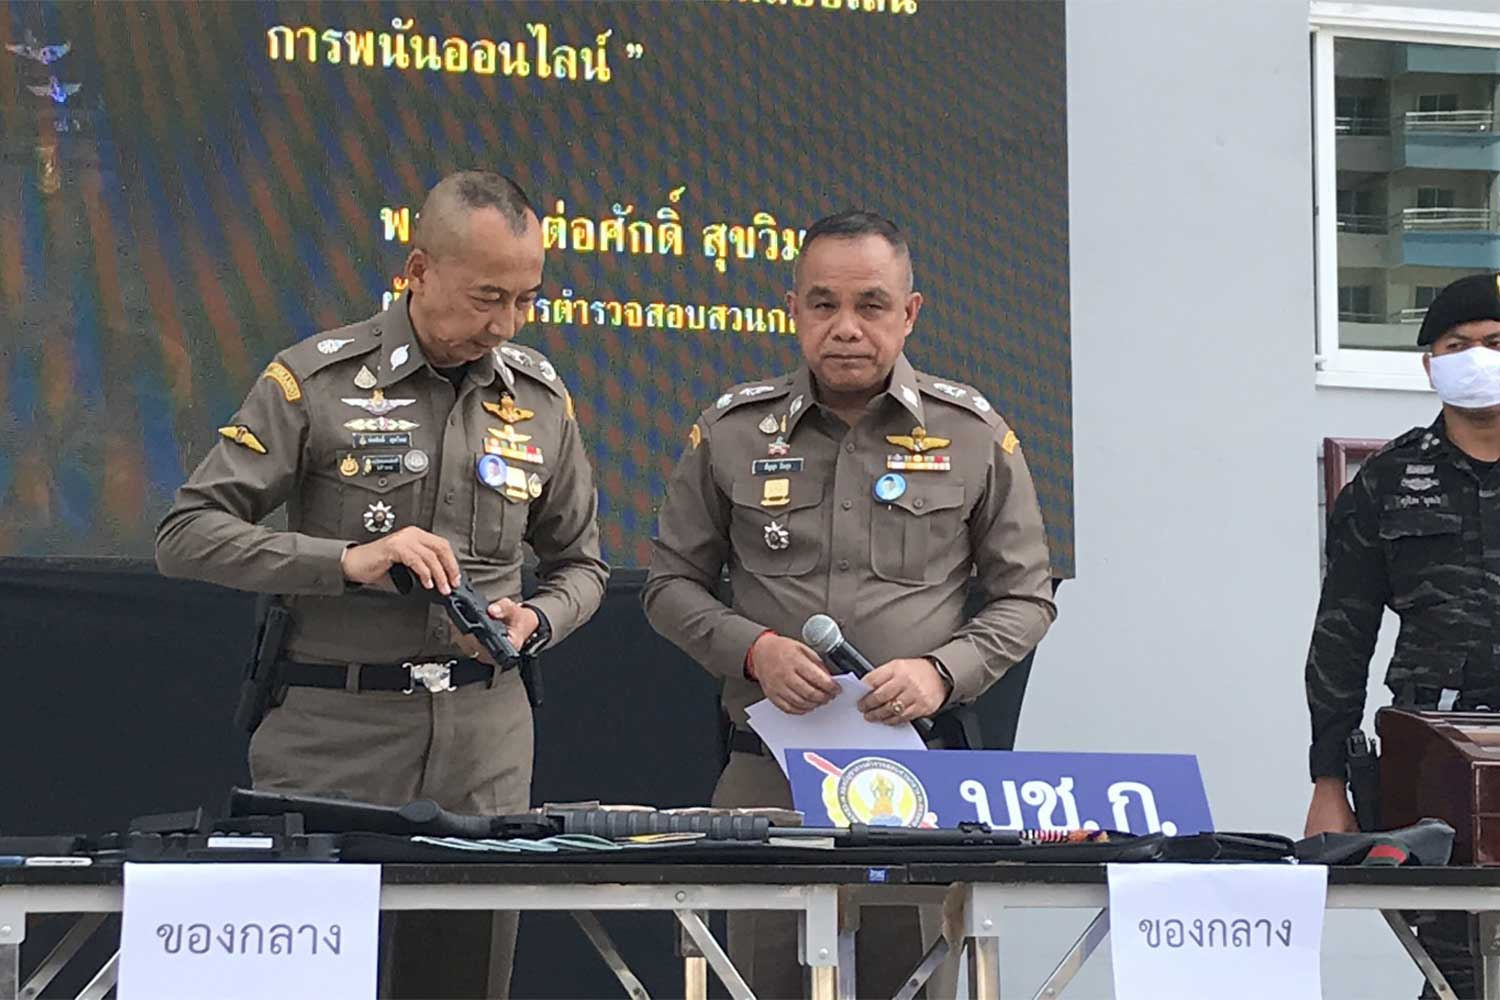 Six held in major online gambling bust